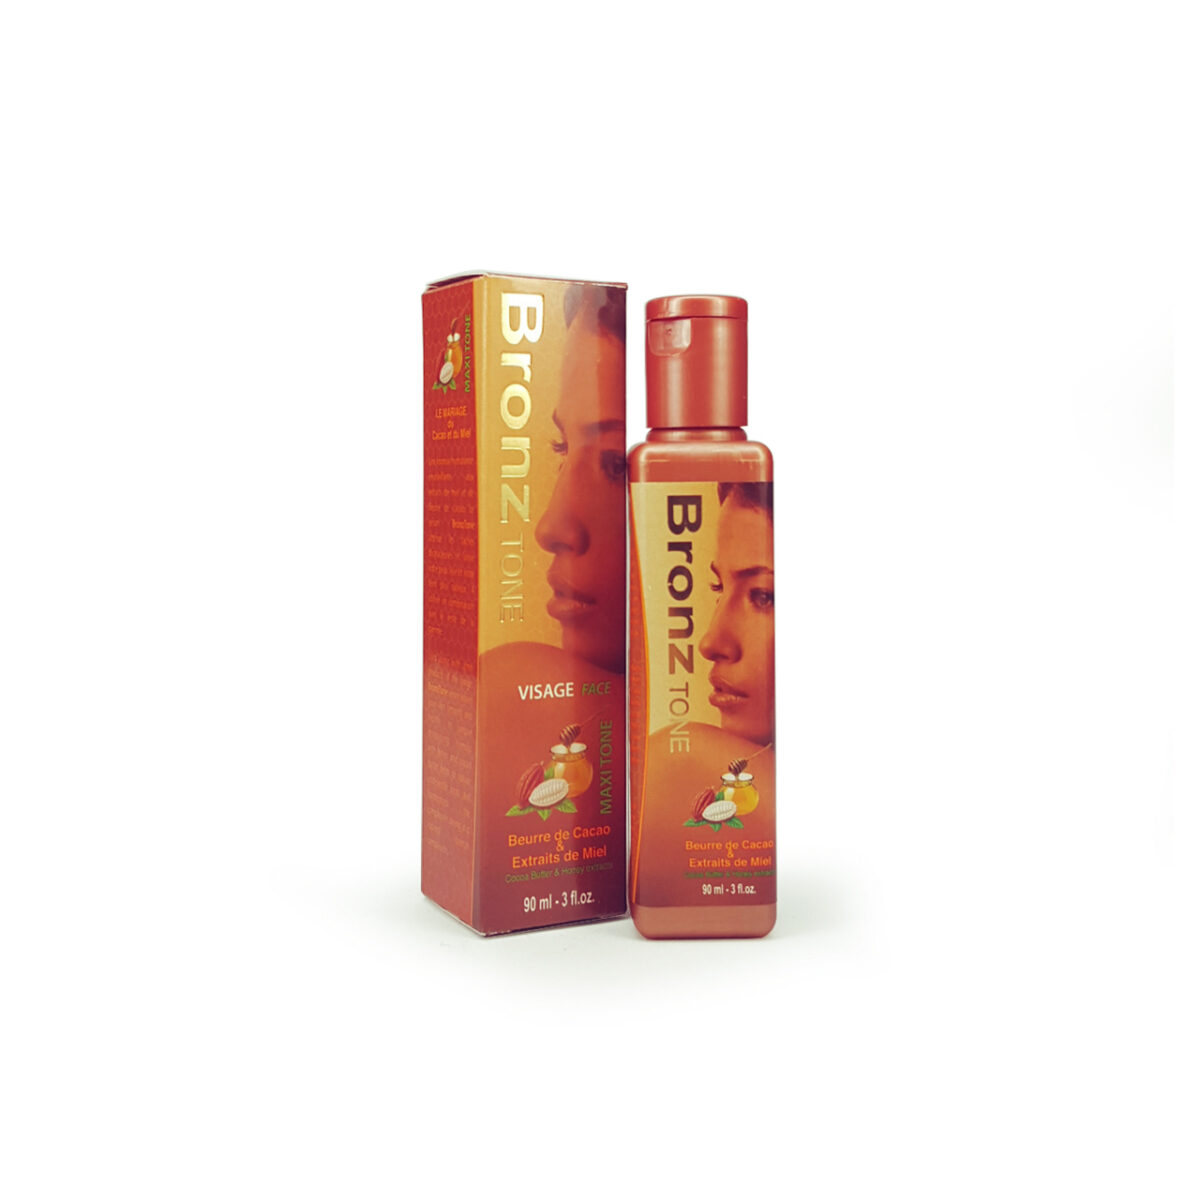 BronzTone Serum 3fl.oz/90ml with Cocoa Butter & Honey Extracts.